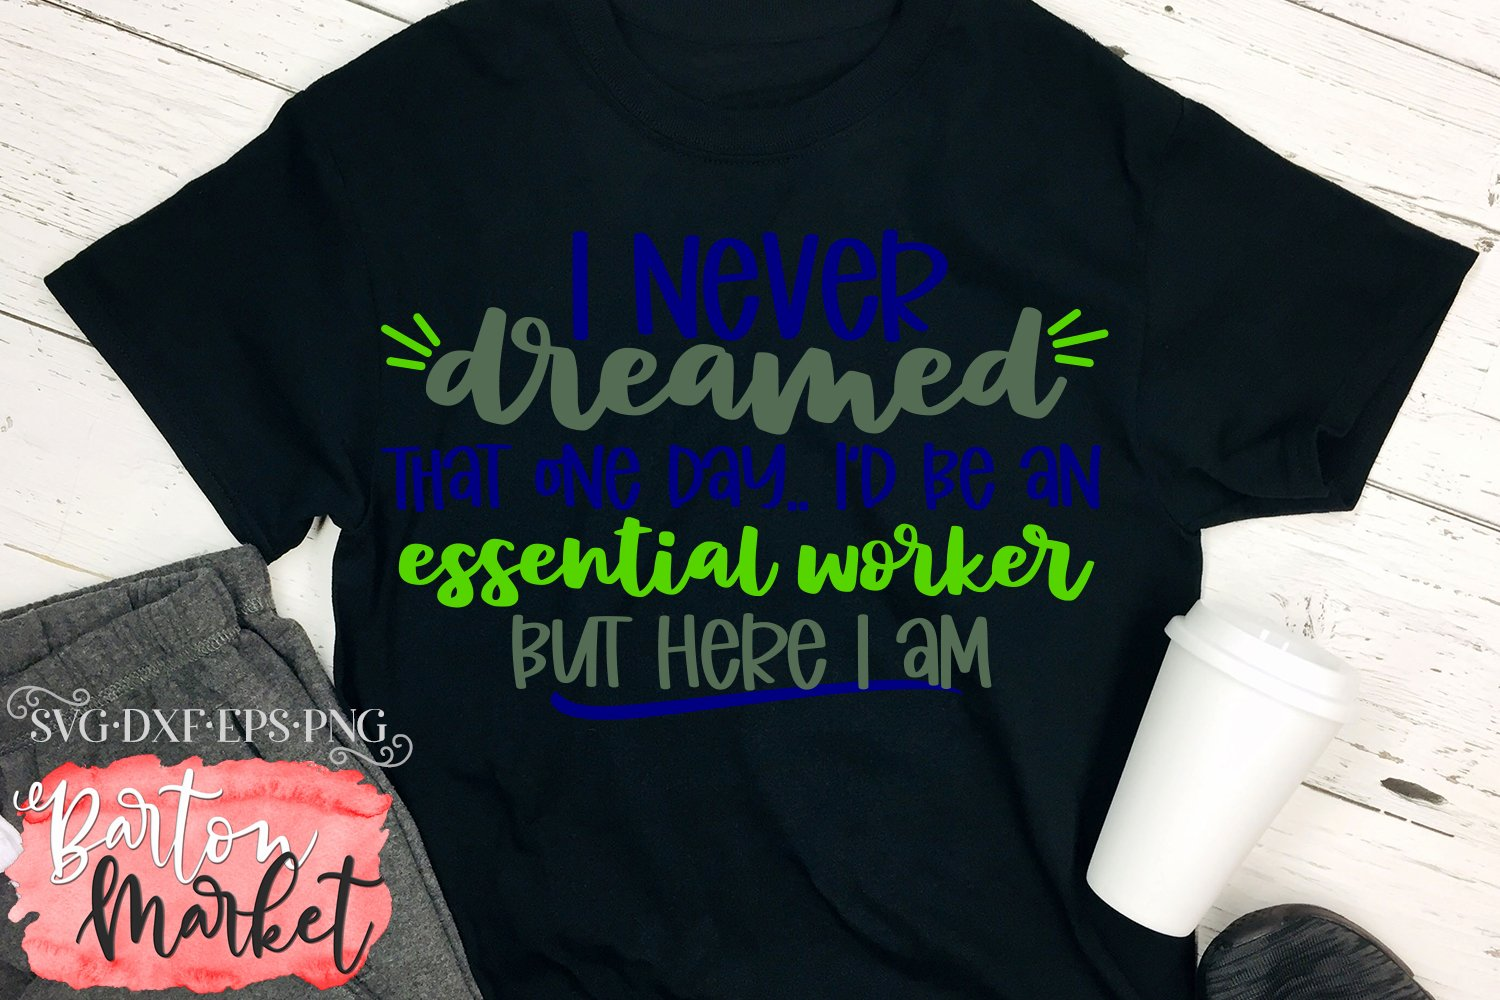 I Never Dreamed I'd Be An Essential Worker SVG DXF EPS PNG example image 4